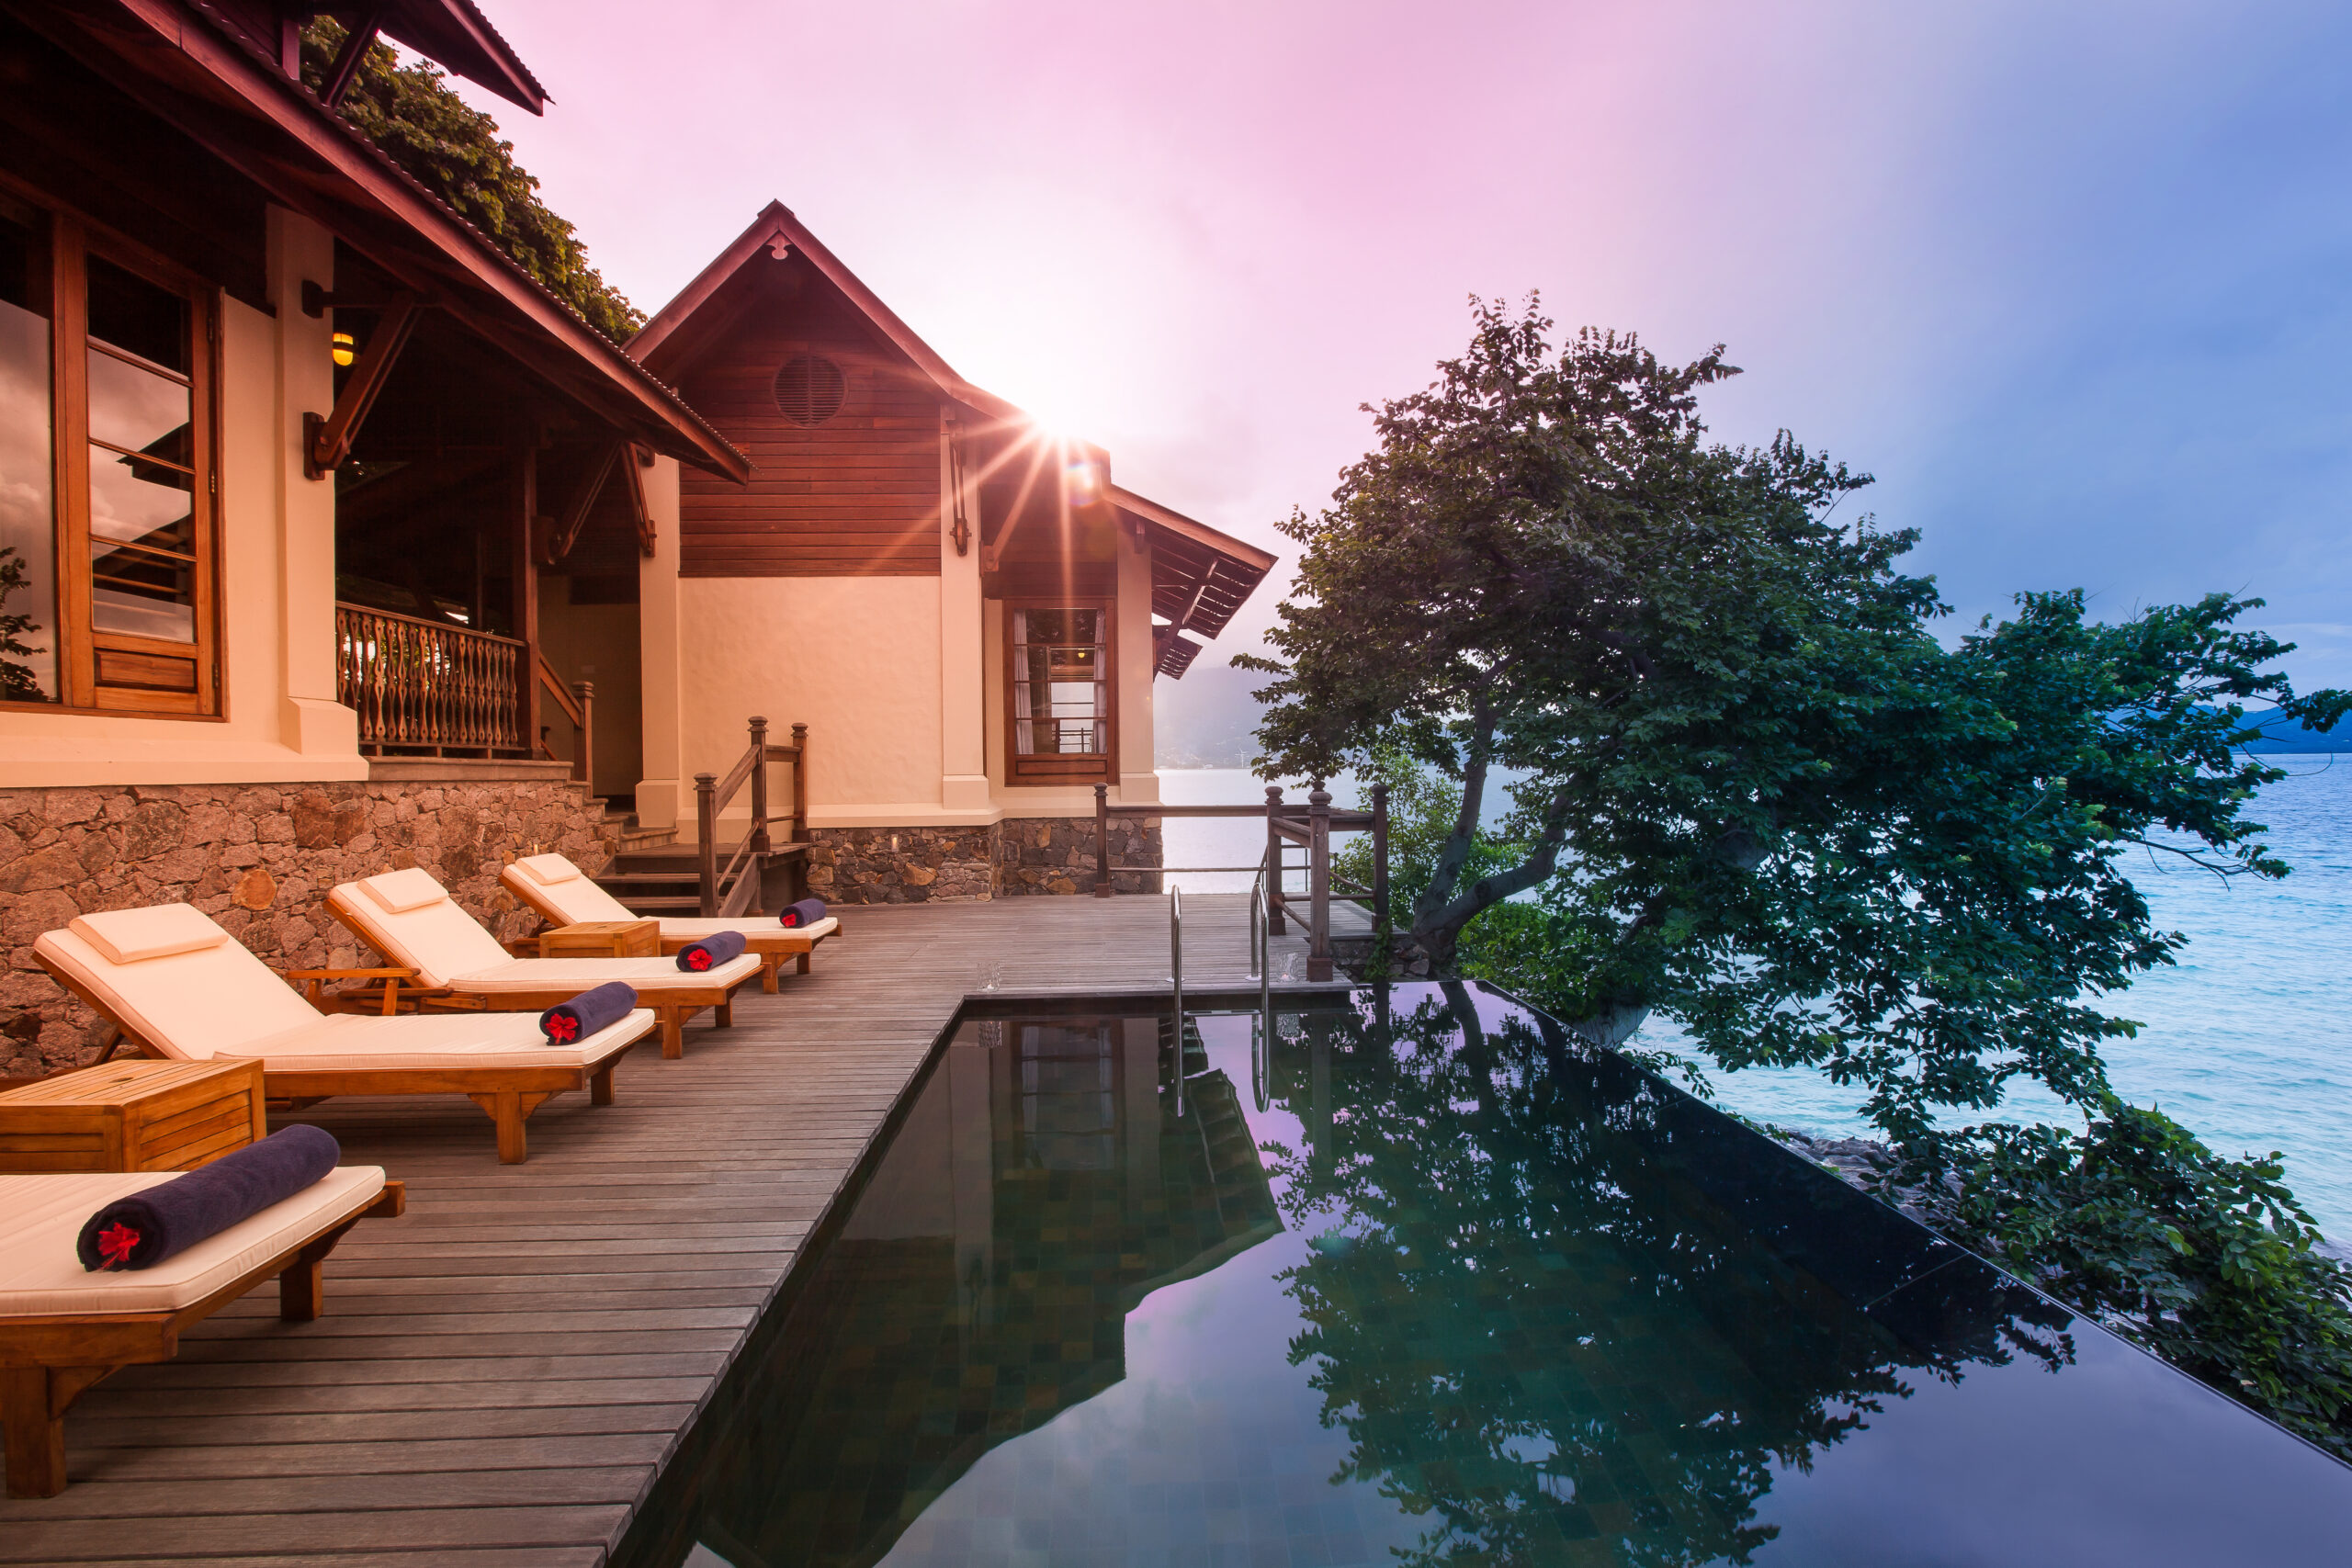 Rent Your Own Private Island From Just £368 Per Person! (And it's Officially COVID-19 Free) JA Enchanted Island Resort, Seychelles - Pool Deck, Villa Flanbwayan